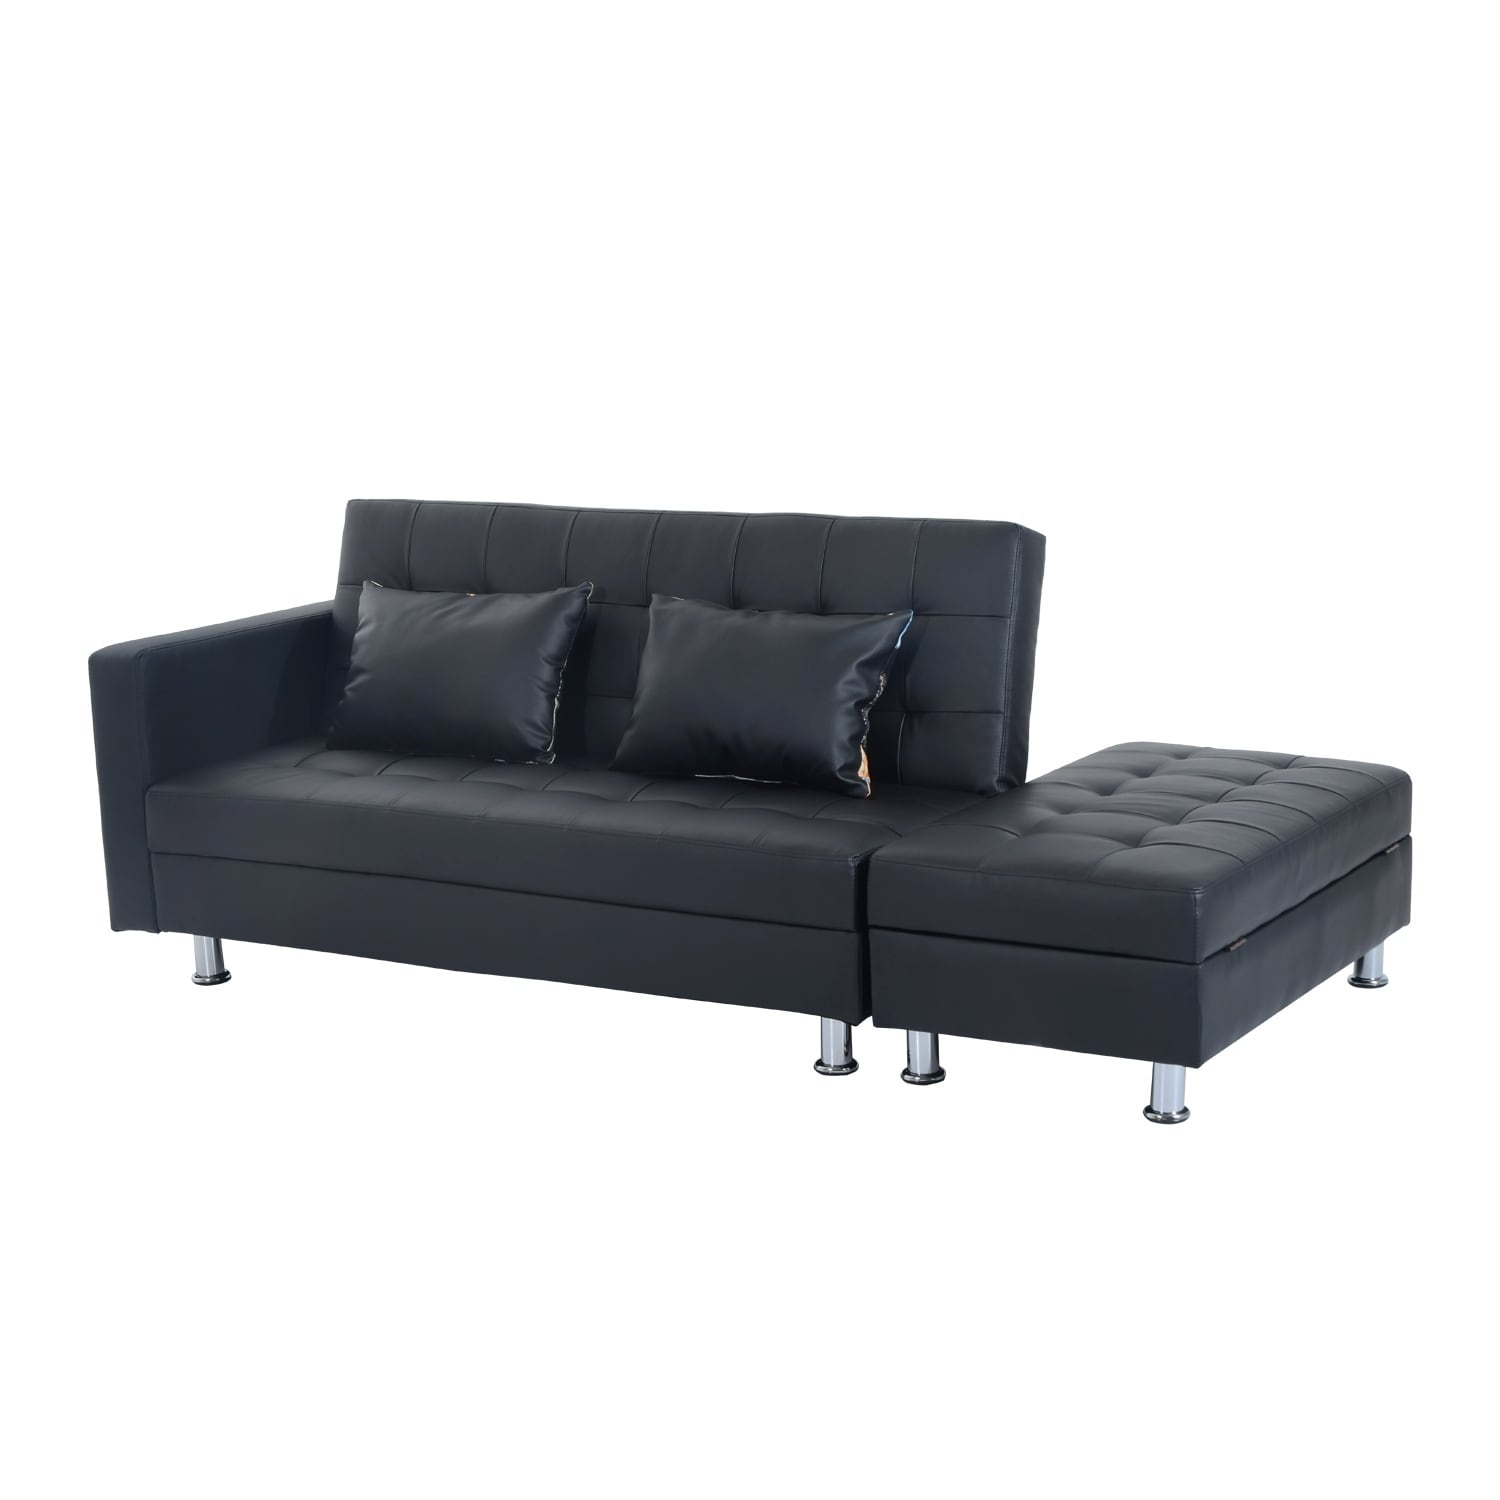 Good Shop HomCom Faux Leather Convertible Sofa Sleeper Bed W/Storage Ottoman    Free Shipping Today   Overstock.com   17966927